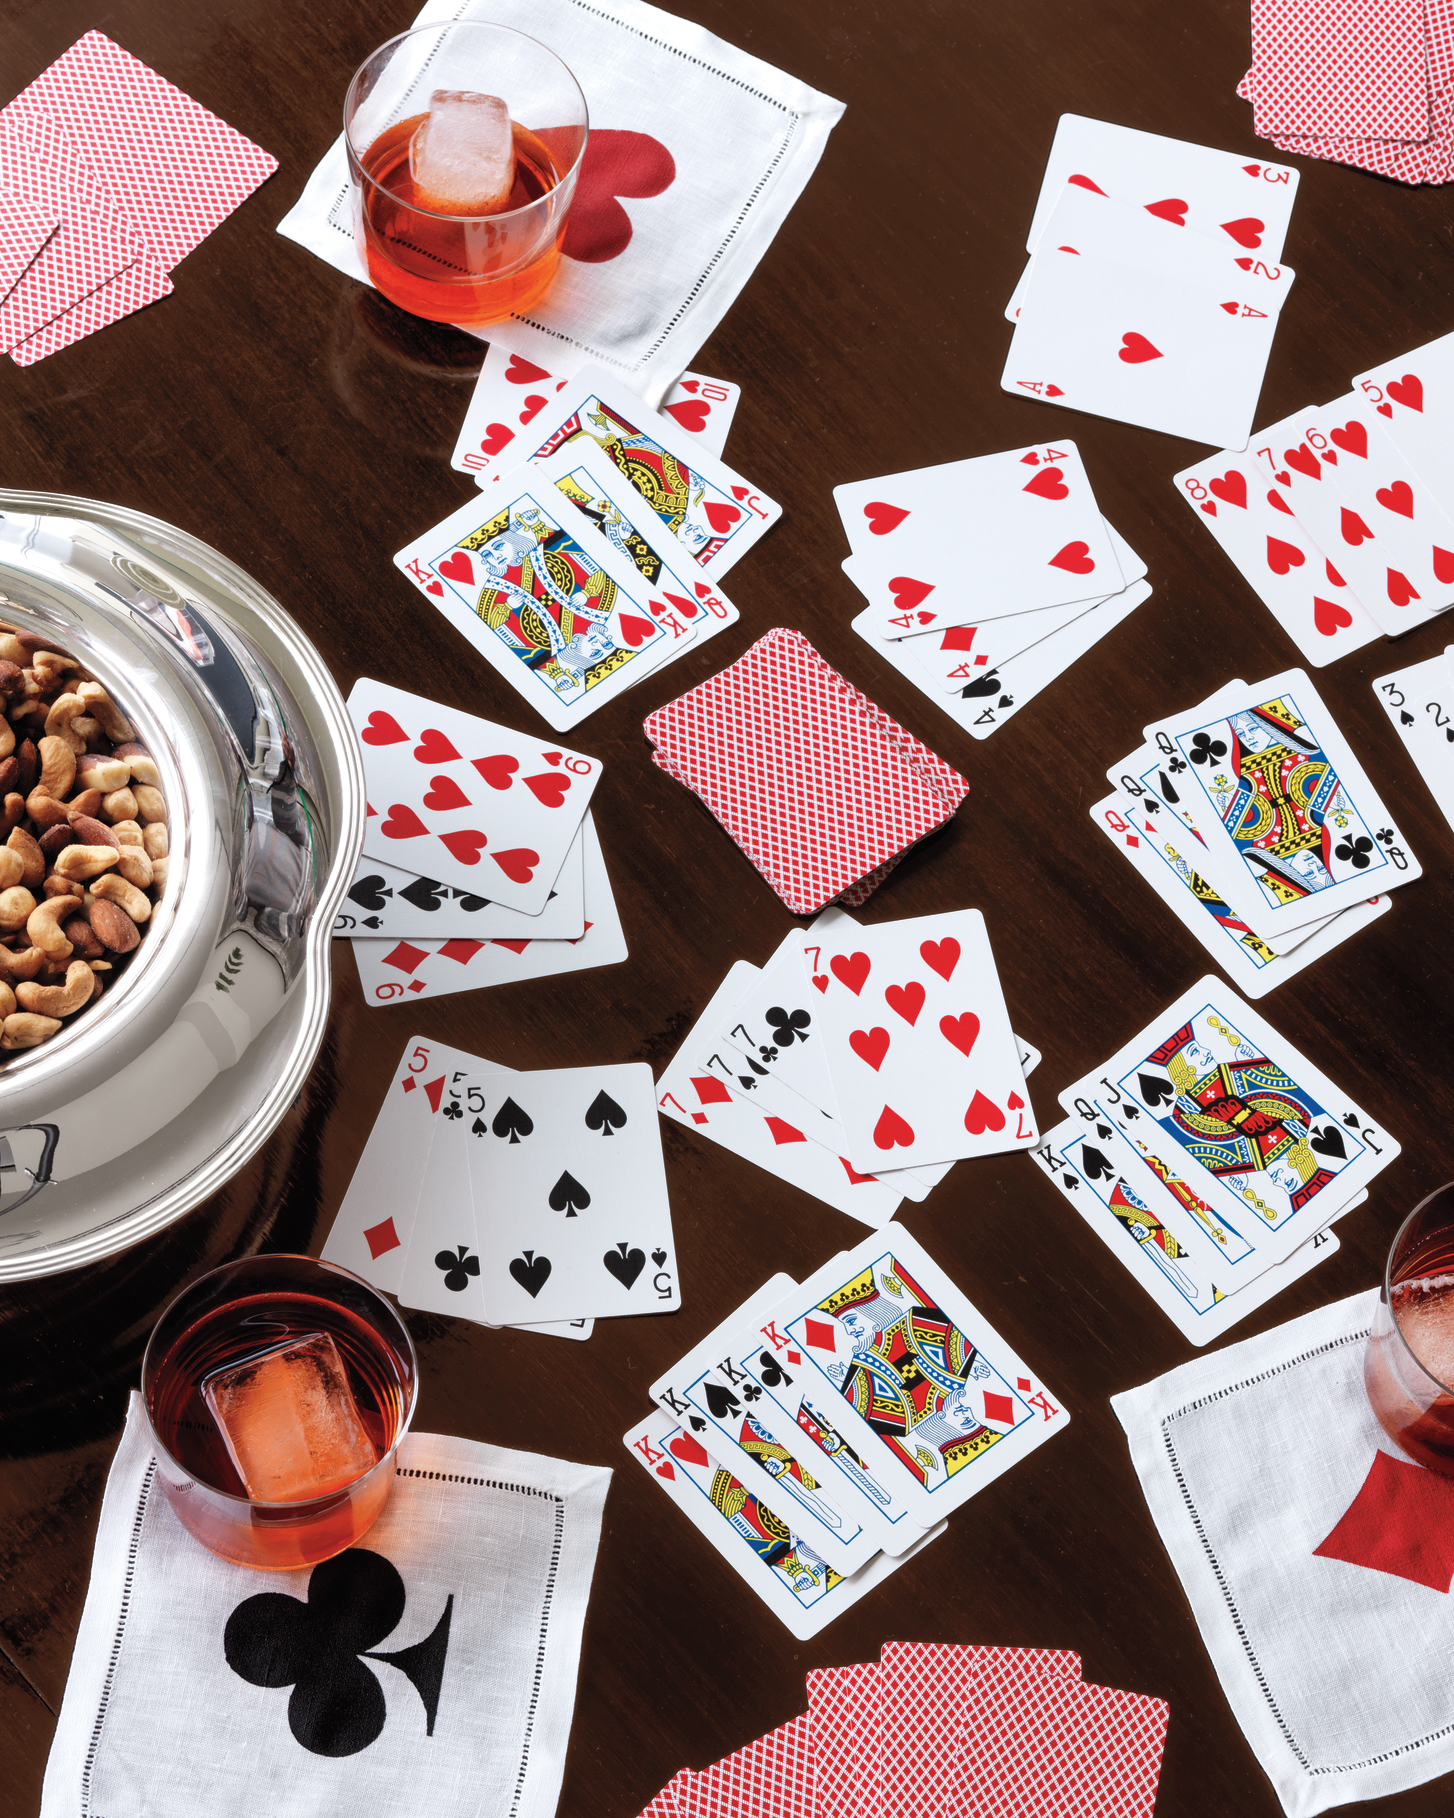 playing-cards-mld108553.jpg